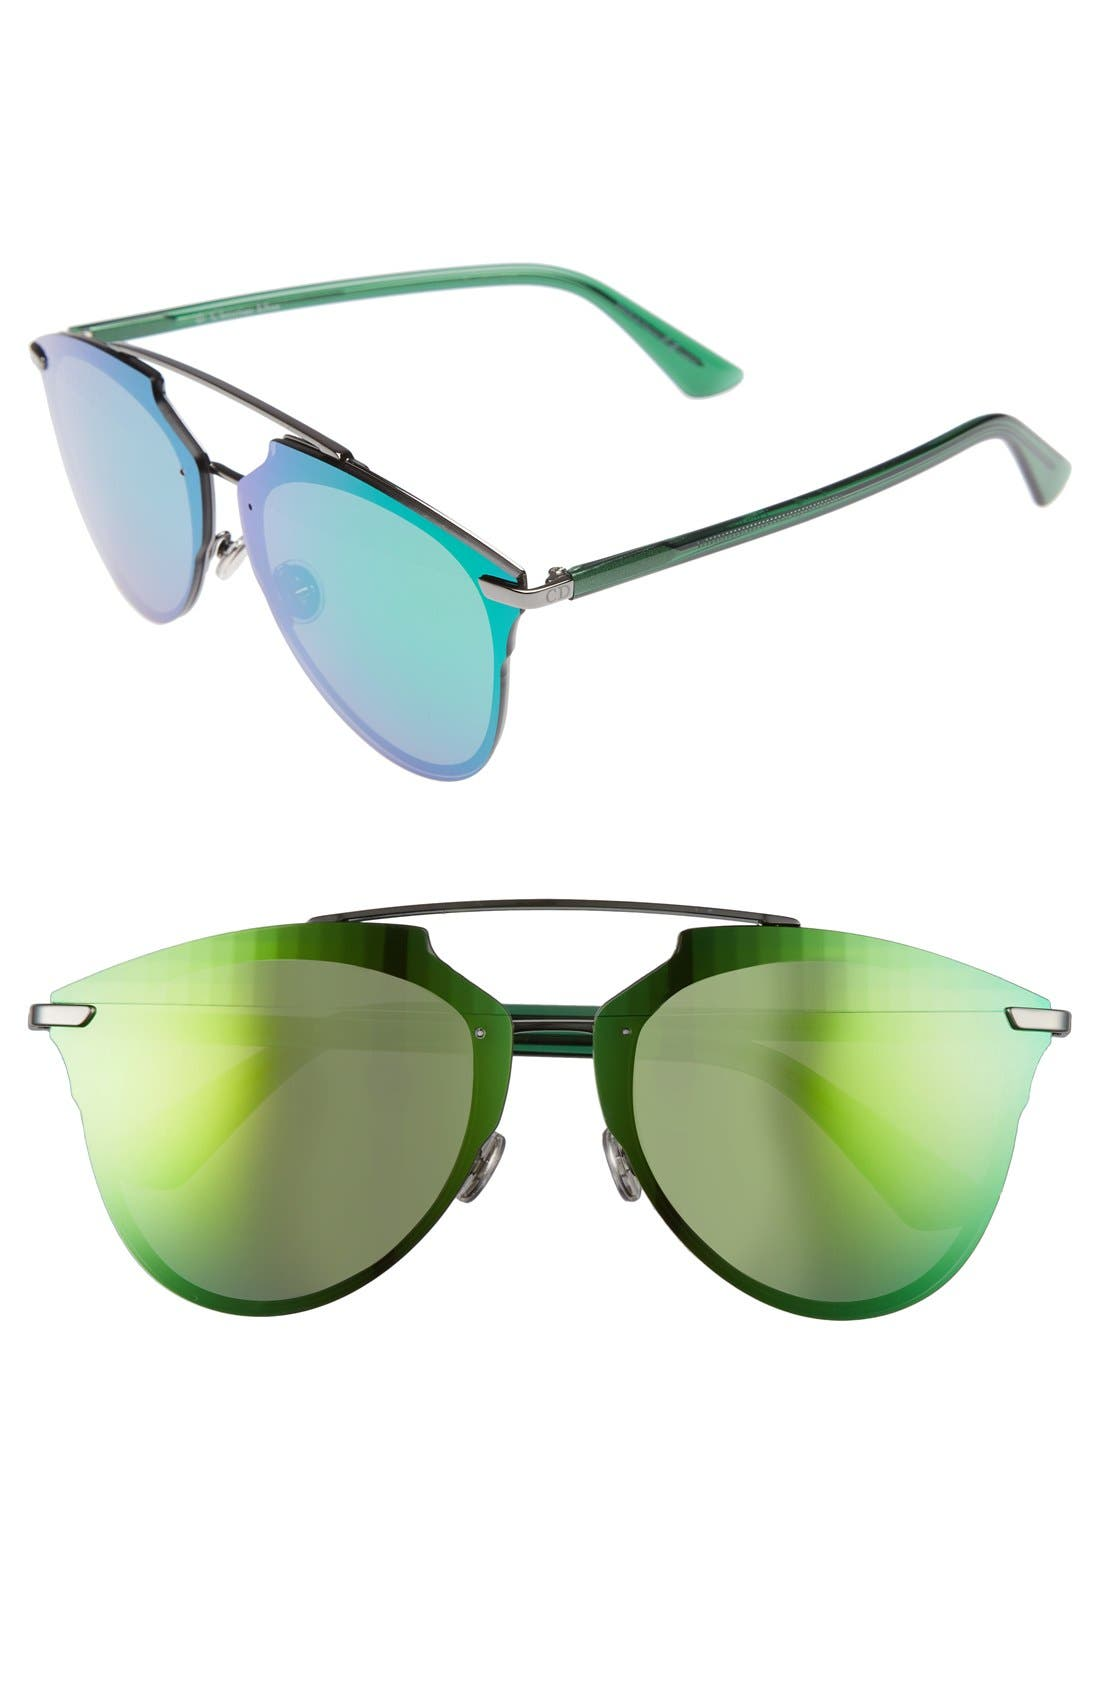 Reflected Prism 63mm Oversize Mirrored Brow Bar Sunglasses,                             Main thumbnail 1, color,                             Dark Ruthenium/ Green